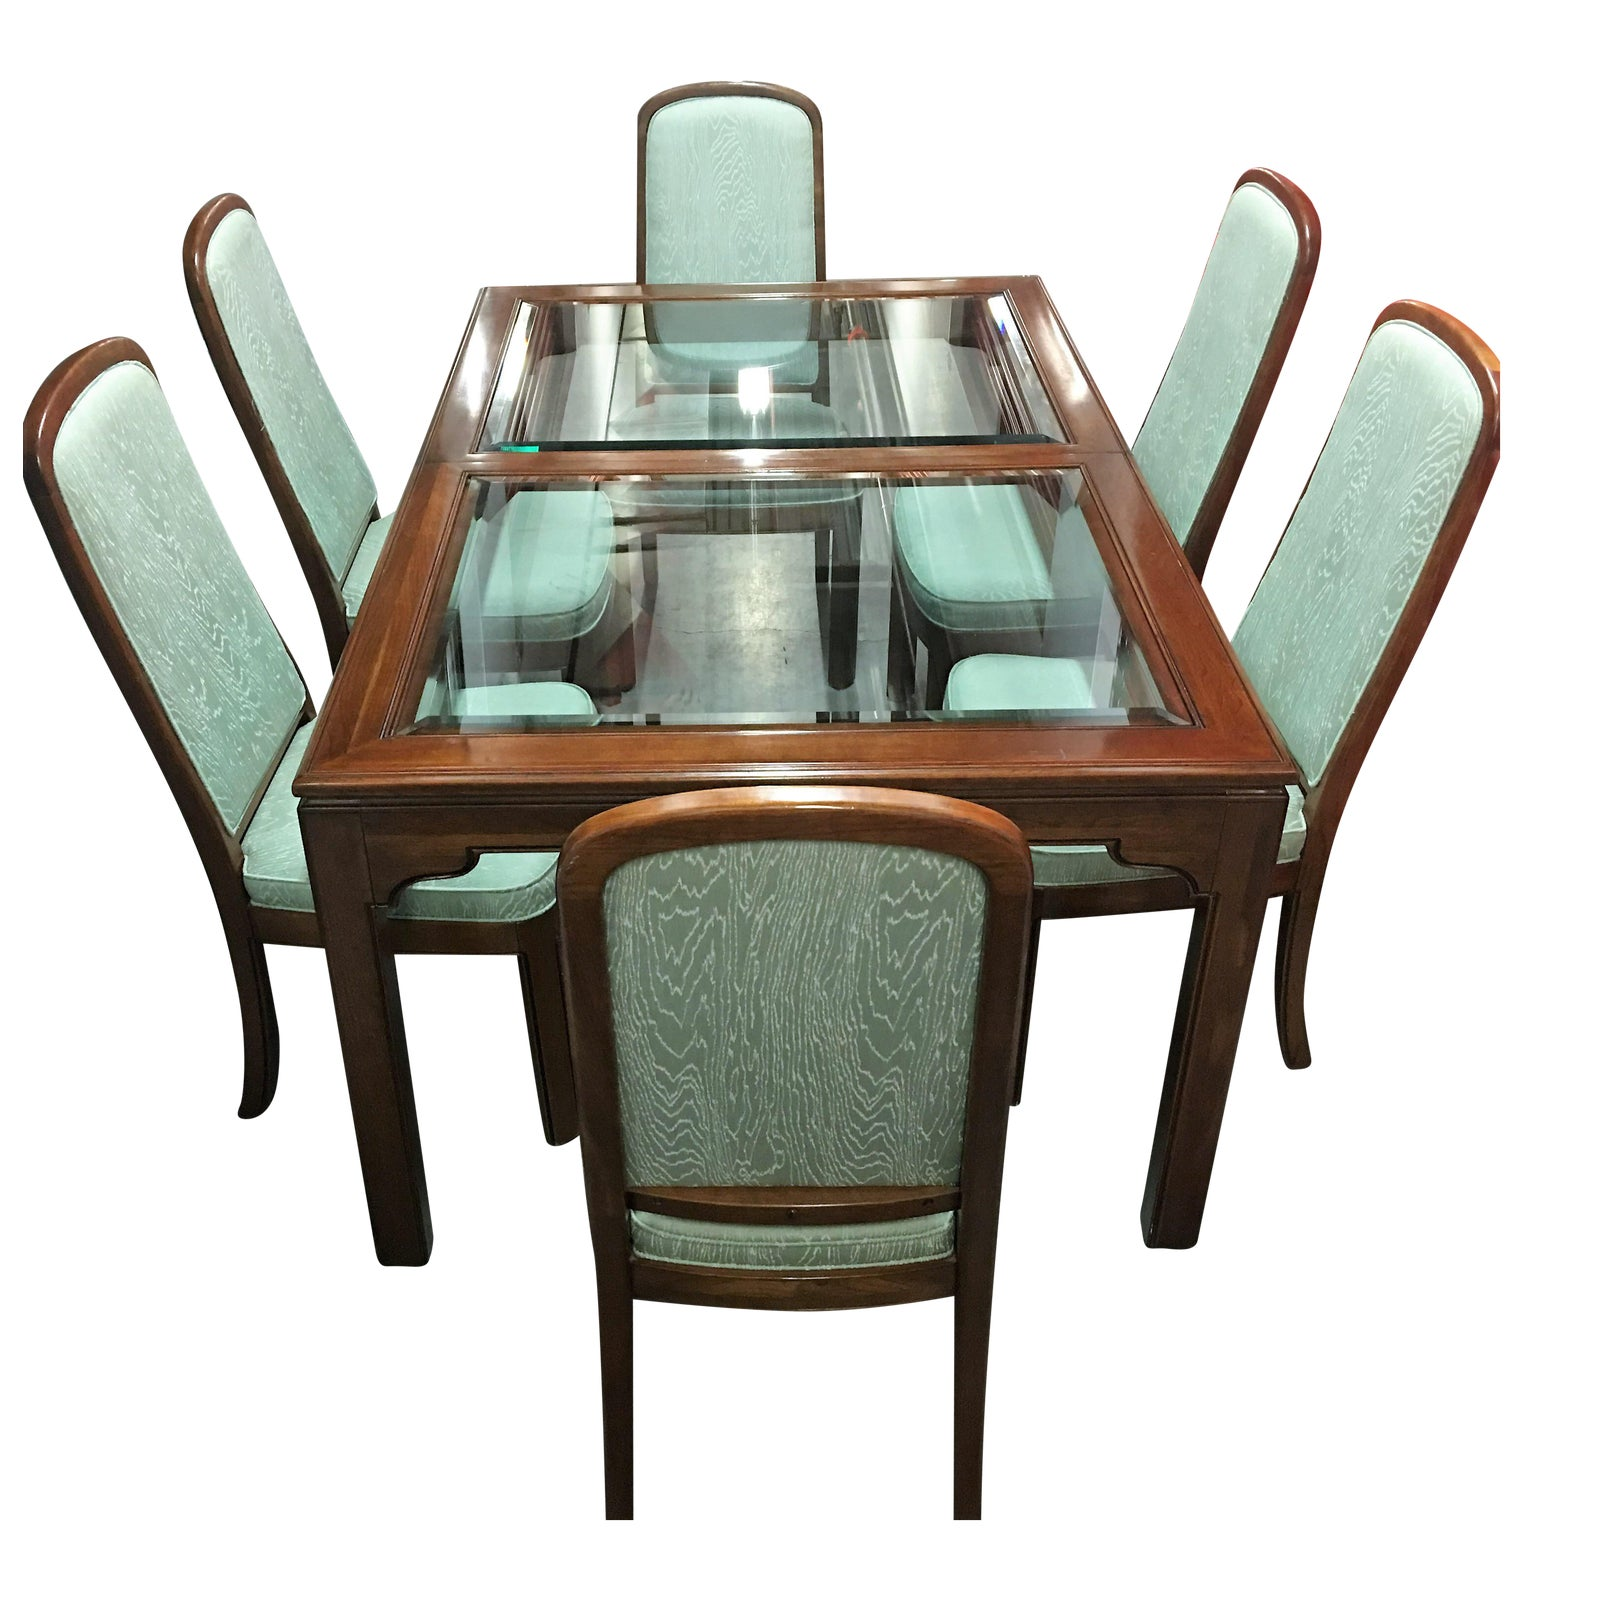 Ethan Allen Dining Room Sets: Ethan Allen Dining Table & Mint Green Chairs